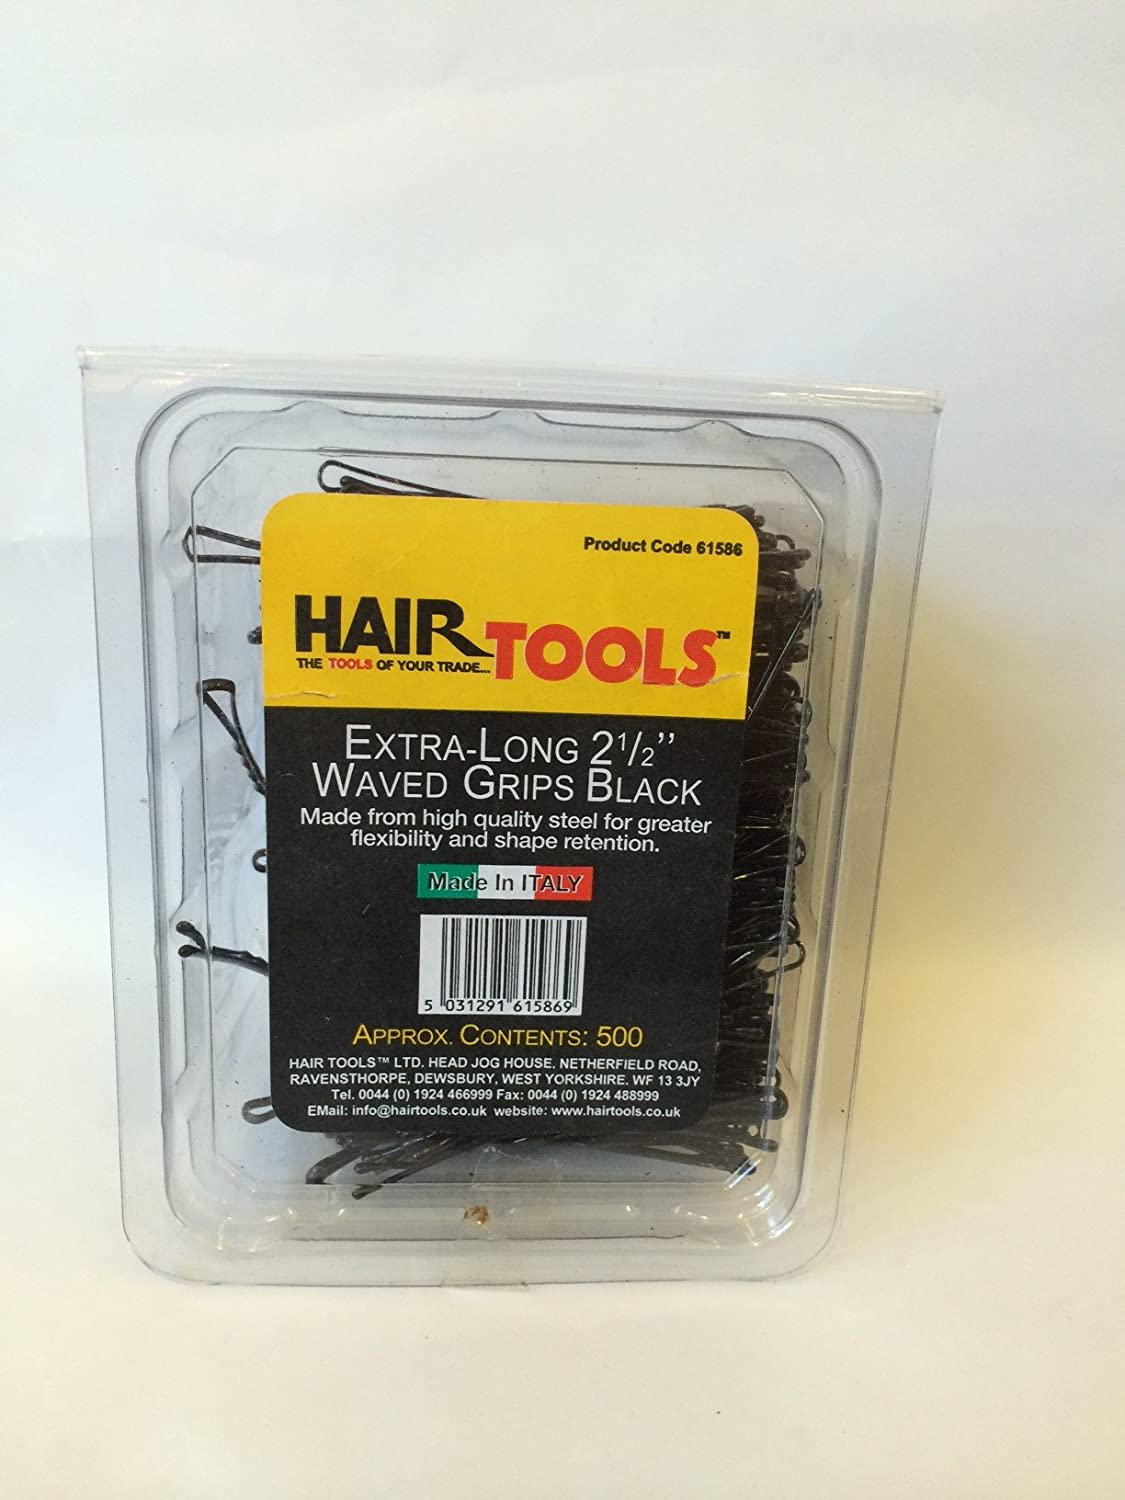 HAIR TOOLS EXTRA-LONG 2 1/2 INCH WAVED BLACK GRIPS 500 BOX 61586